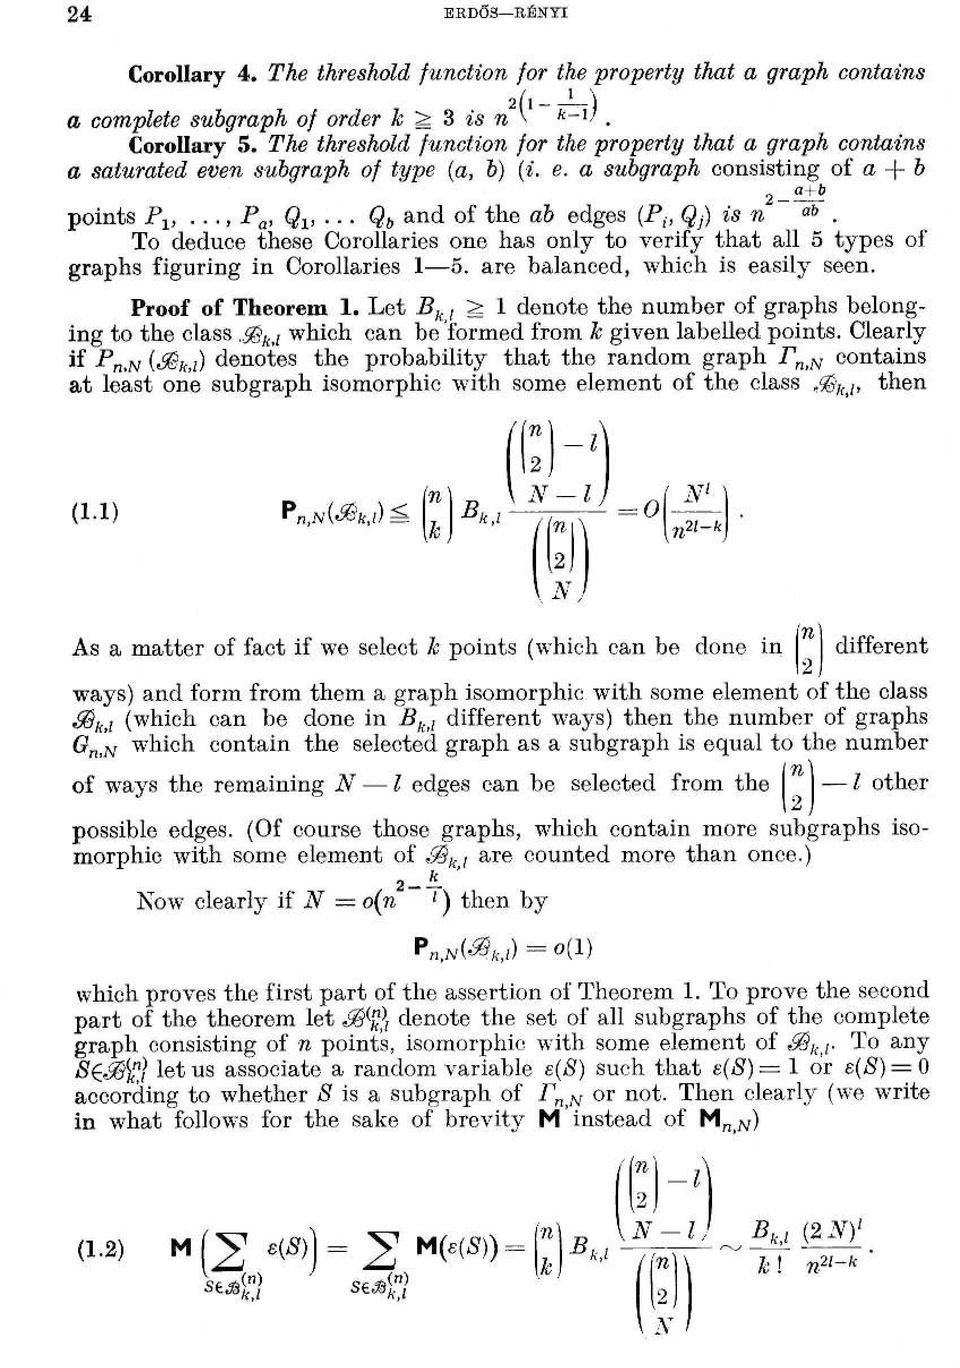 .. Q b ad of the ab edges (P1, Qj ) is ab. To deduce these Corollaries oe has oly to verify that all 5 types of graphs figurig i Corollaries 1-5. are balaced, which is easily see. Proof of Theorem 1.